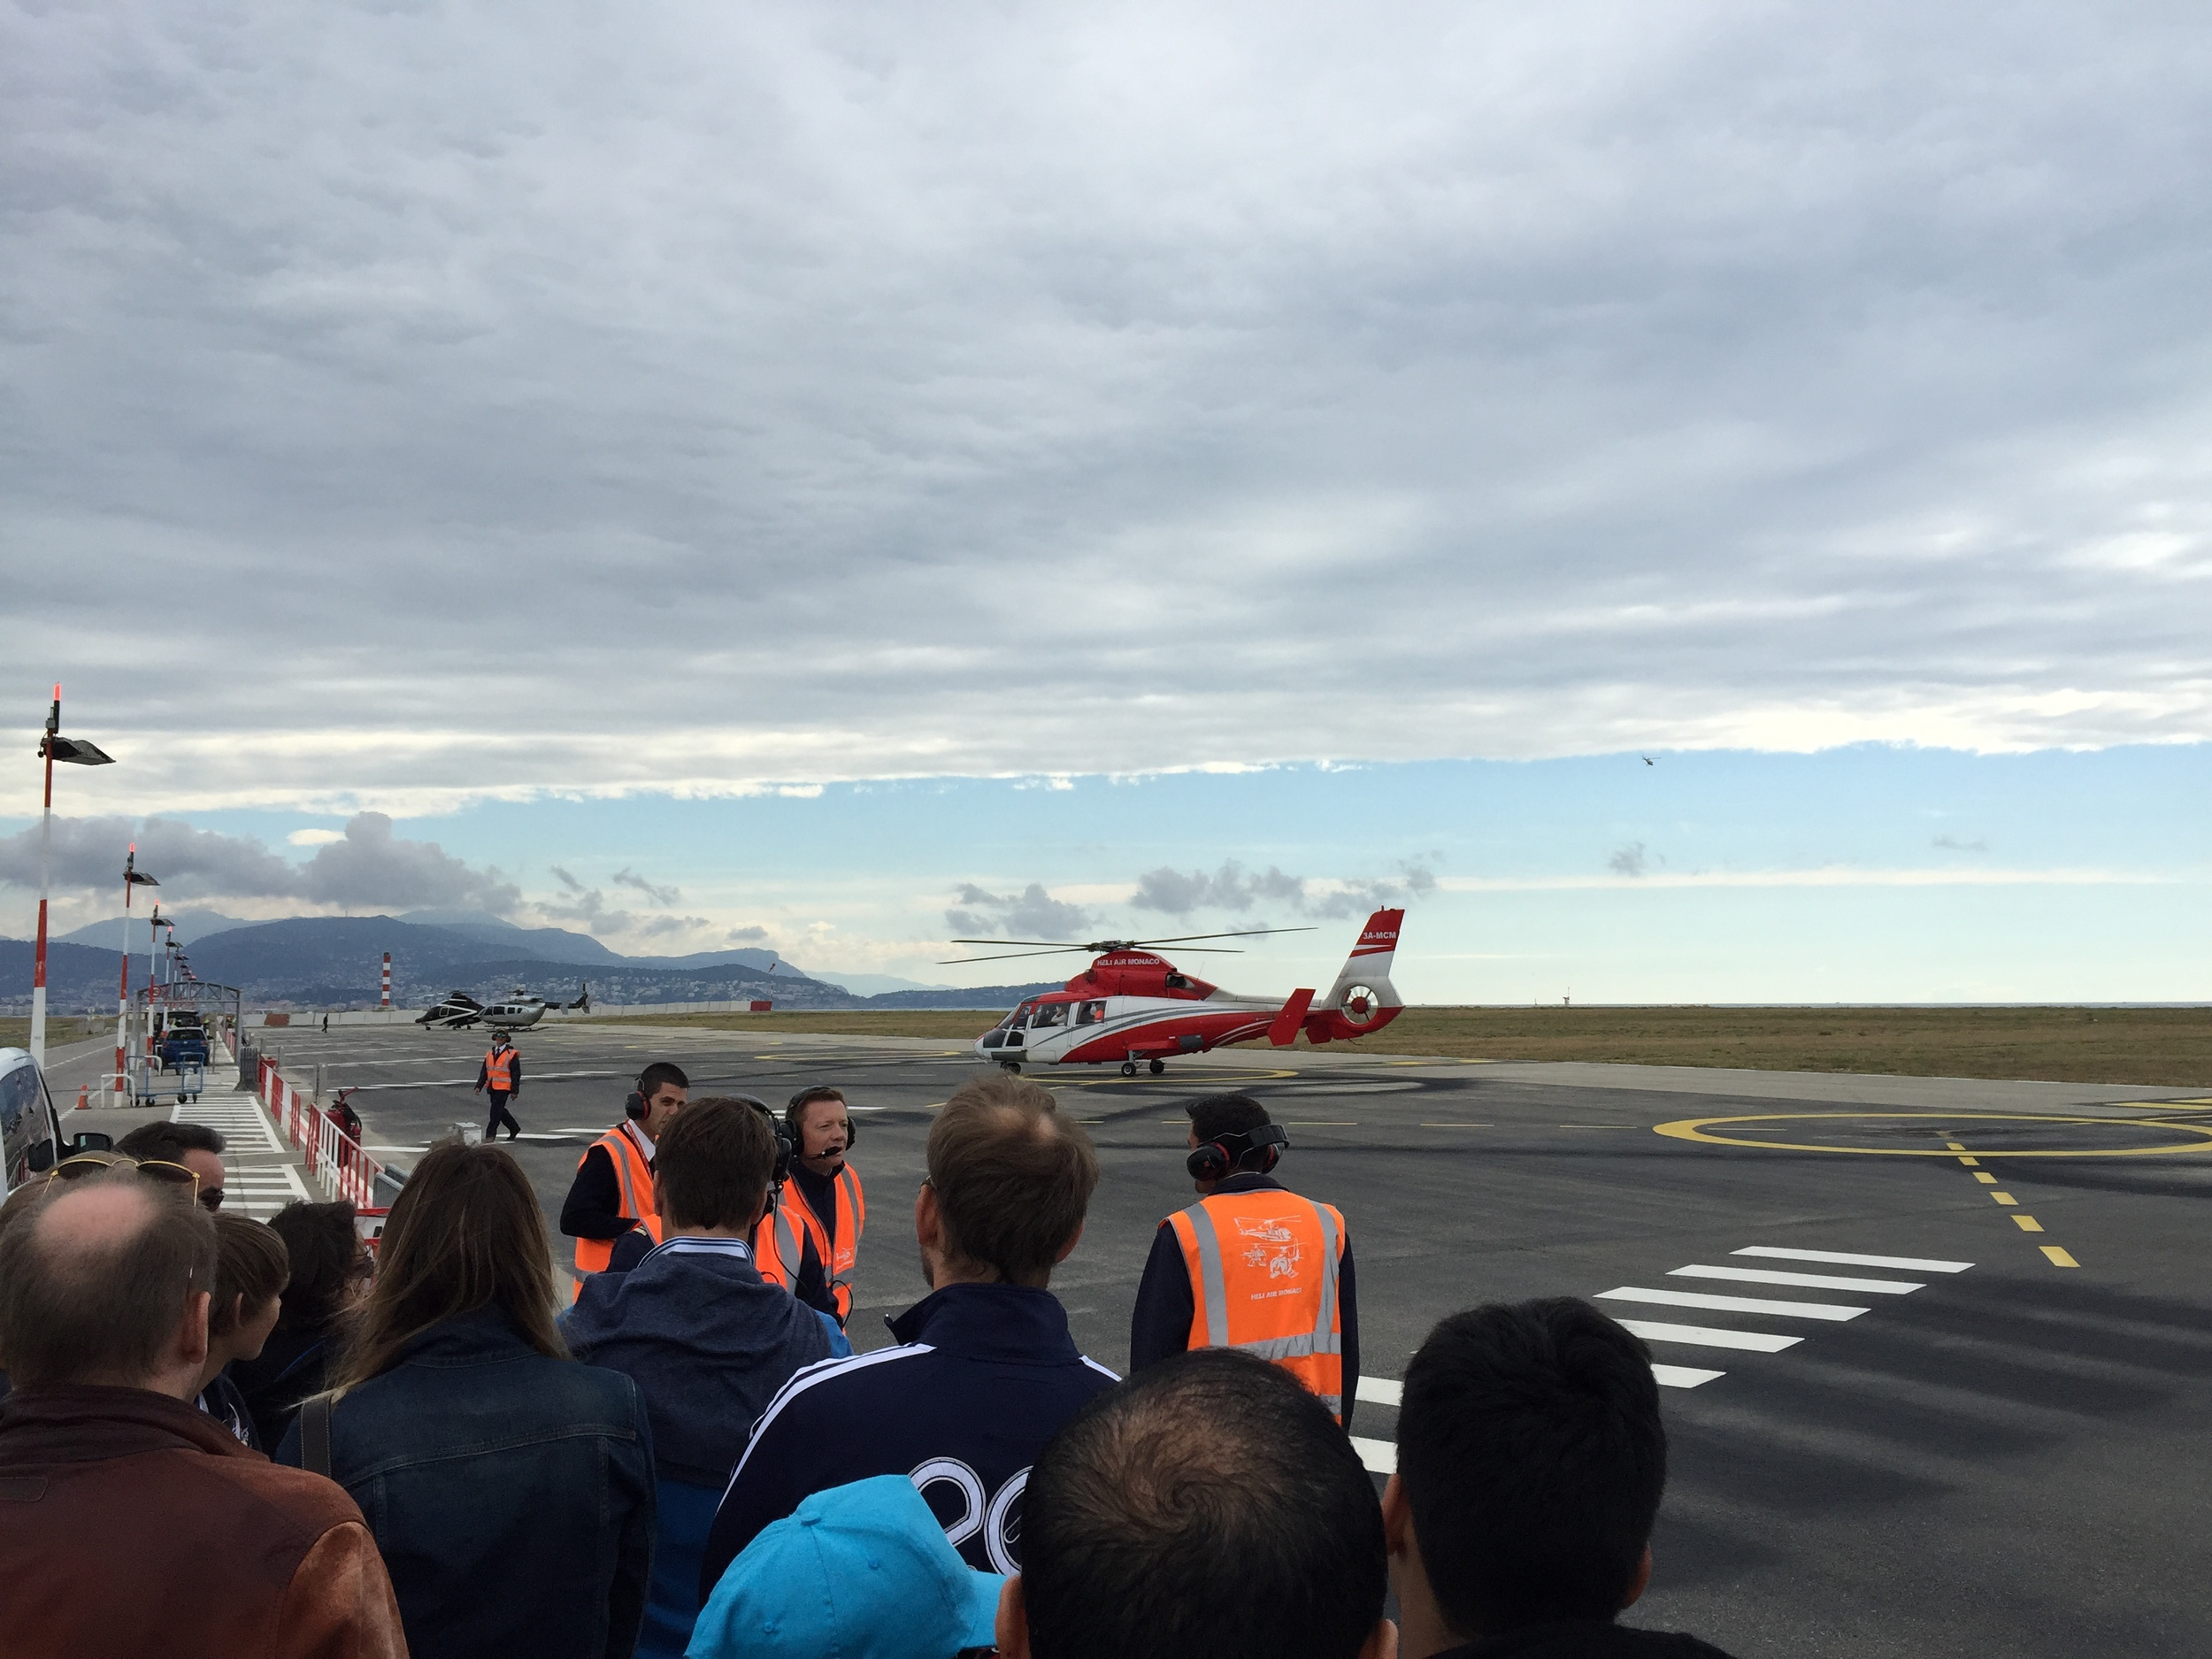 The line up for the helicopters reminded me of the taxi cab line up outside Vancouver International Airport.